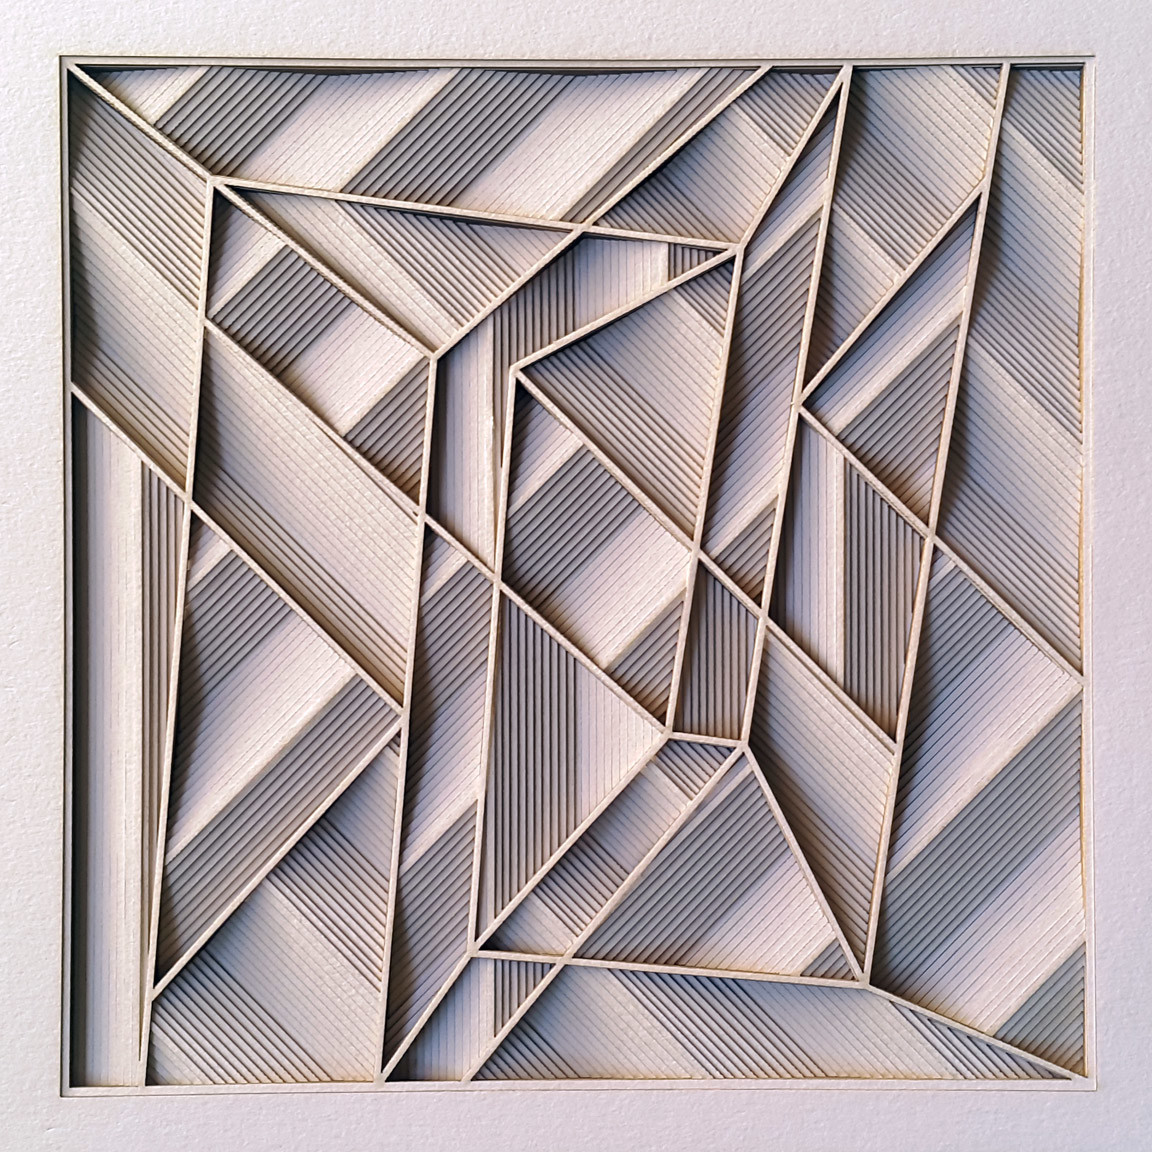 Construction 037A, PAPER CUT RELIEF SCULPTURE by S. Ravi Shankar, Abstract Sculpture | 3D, Formed Paper, Gray color